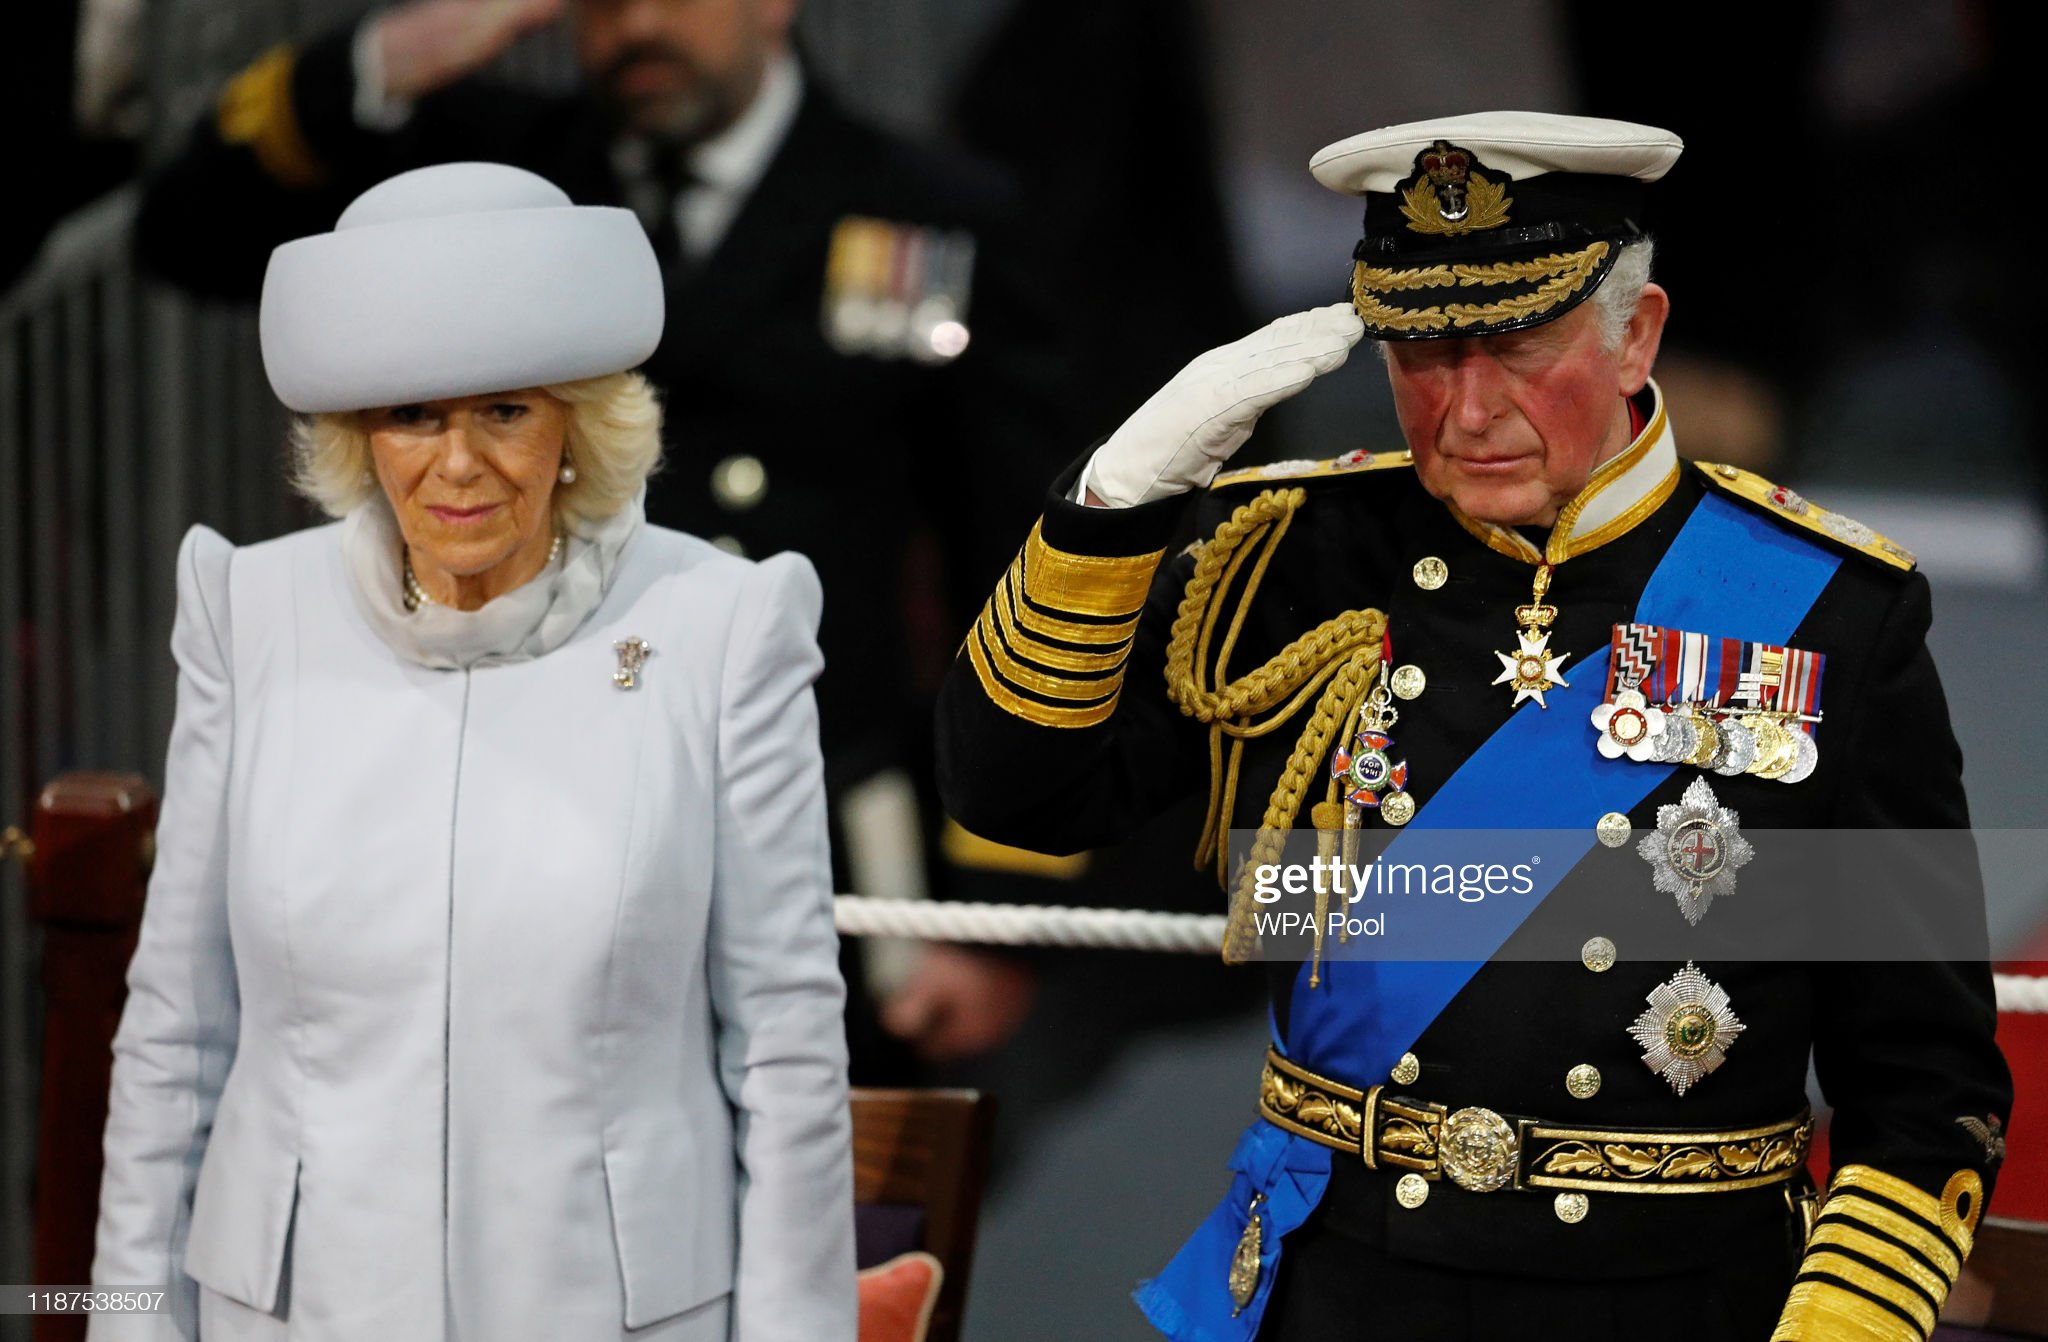 prince-charles-prince-of-wales-and-camilla-duchess-of-cornwall-attend-picture-id1187538507